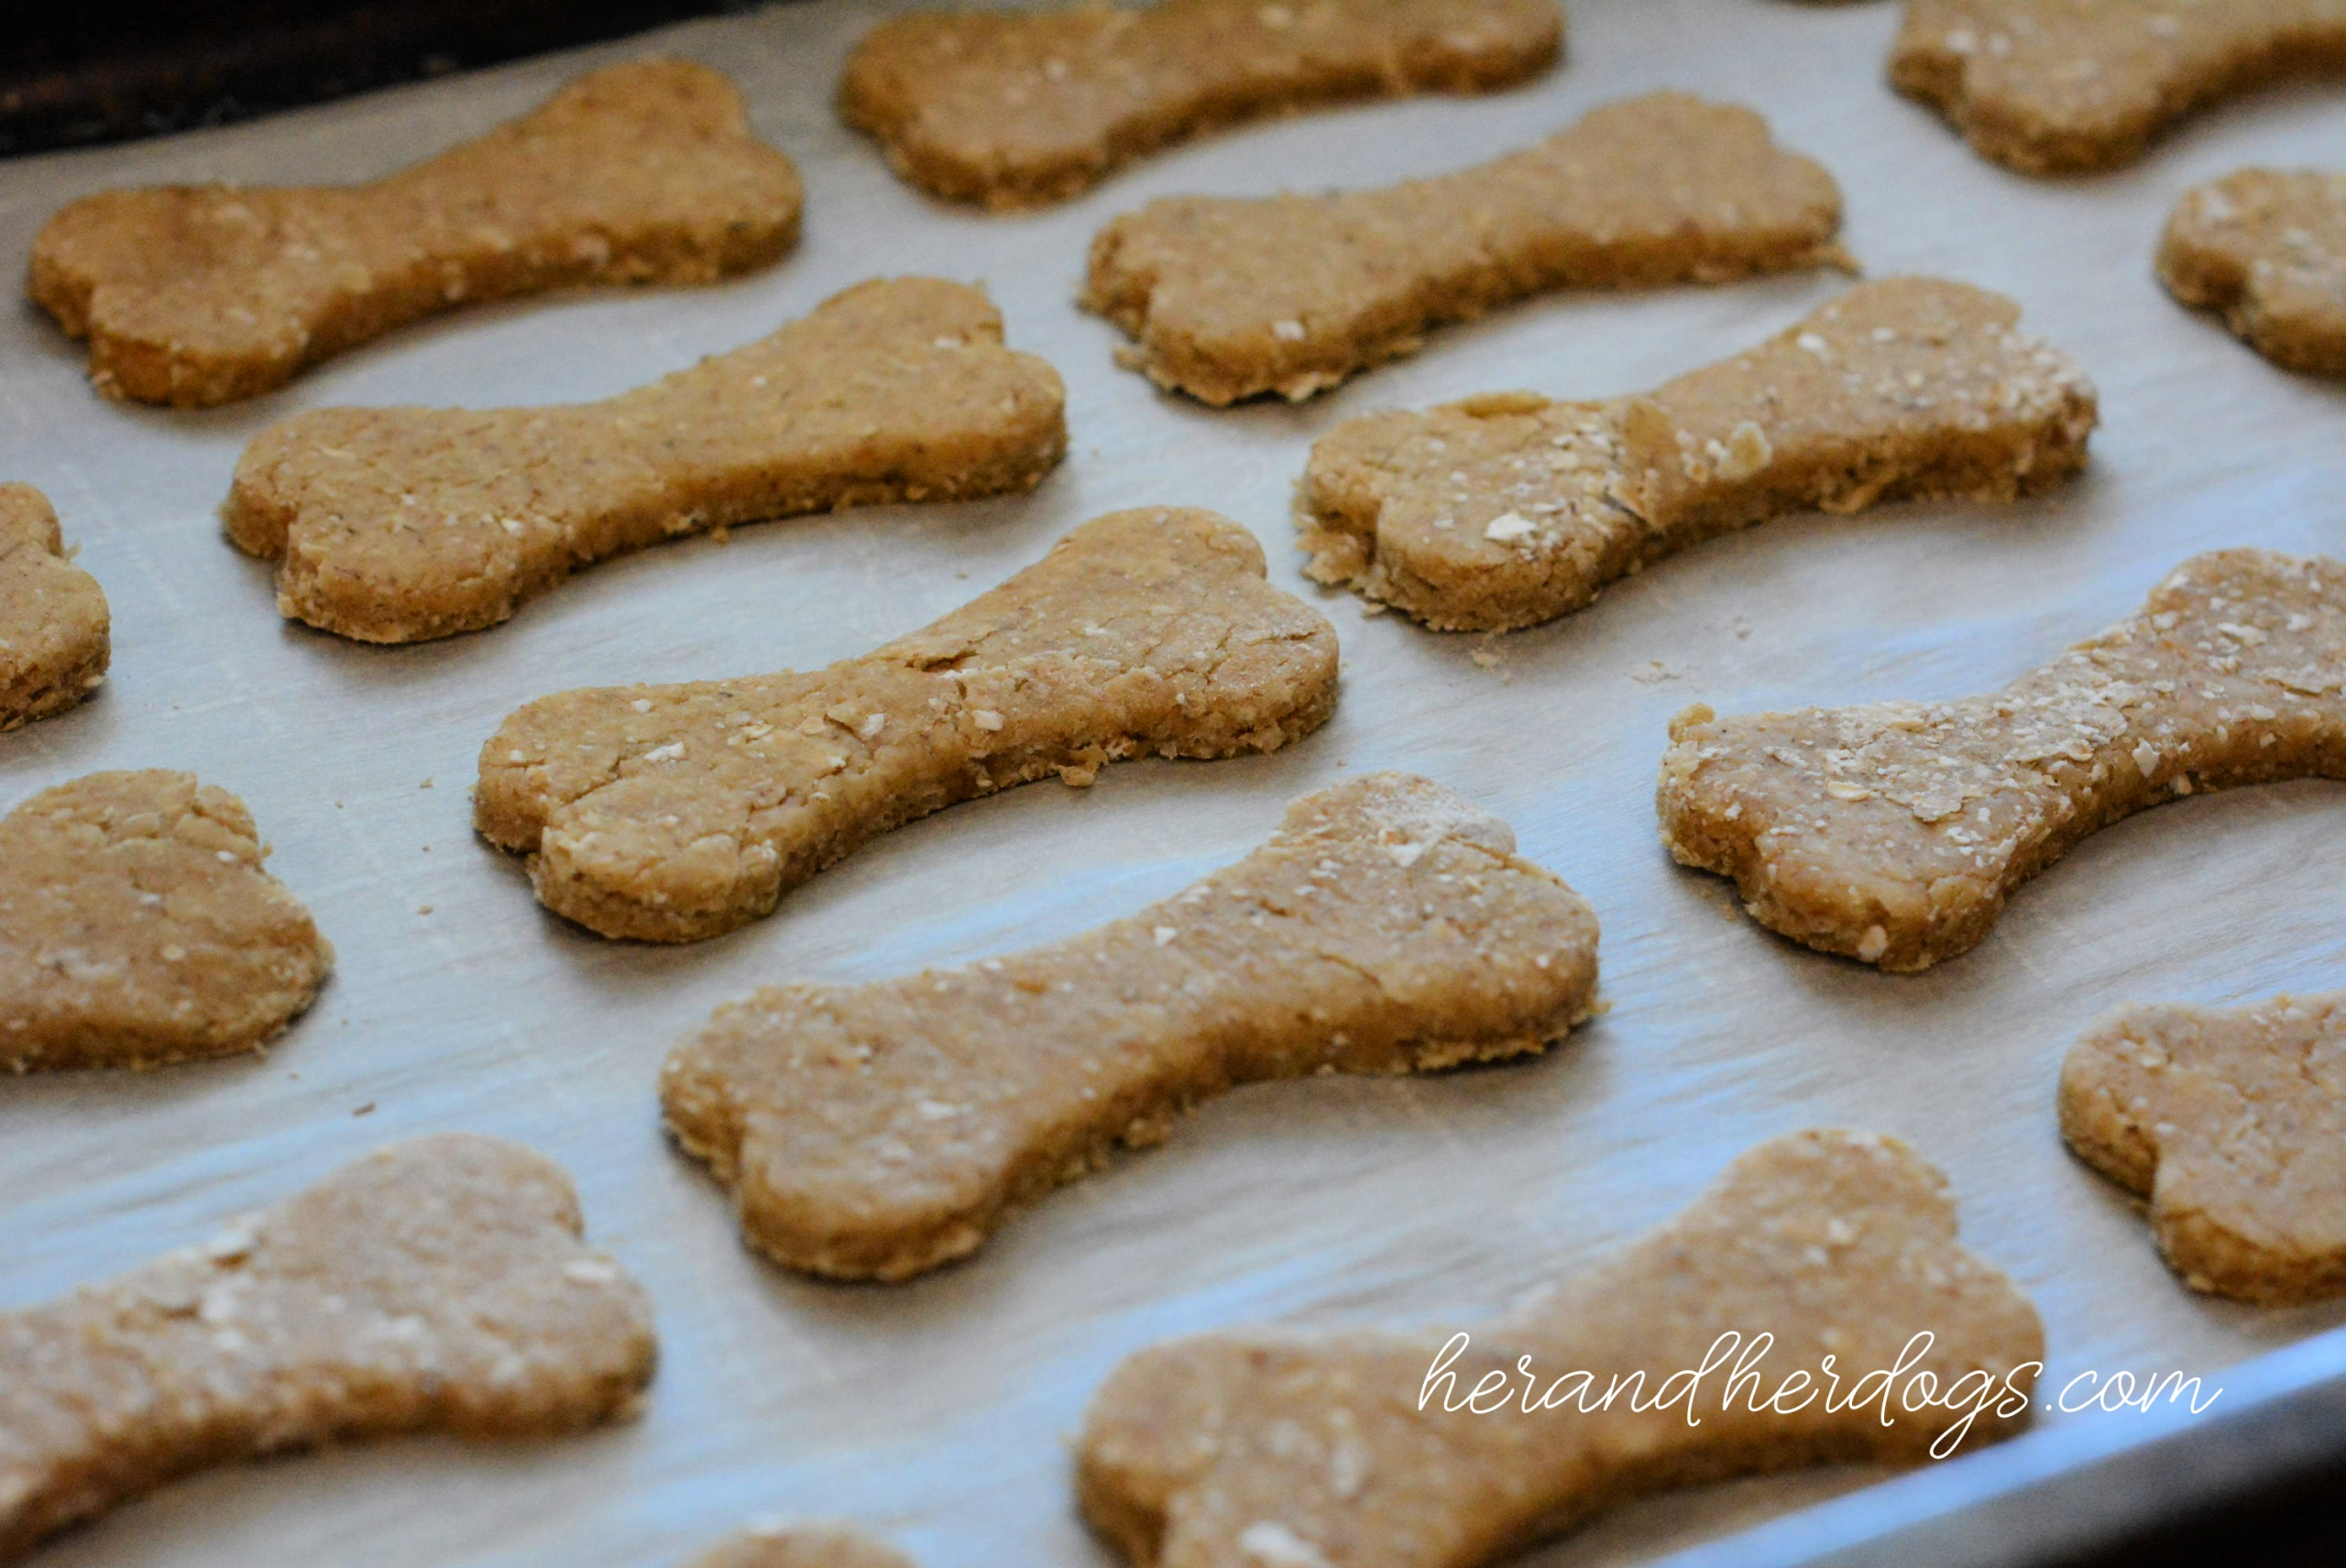 CAROB ICED DOG TREATS